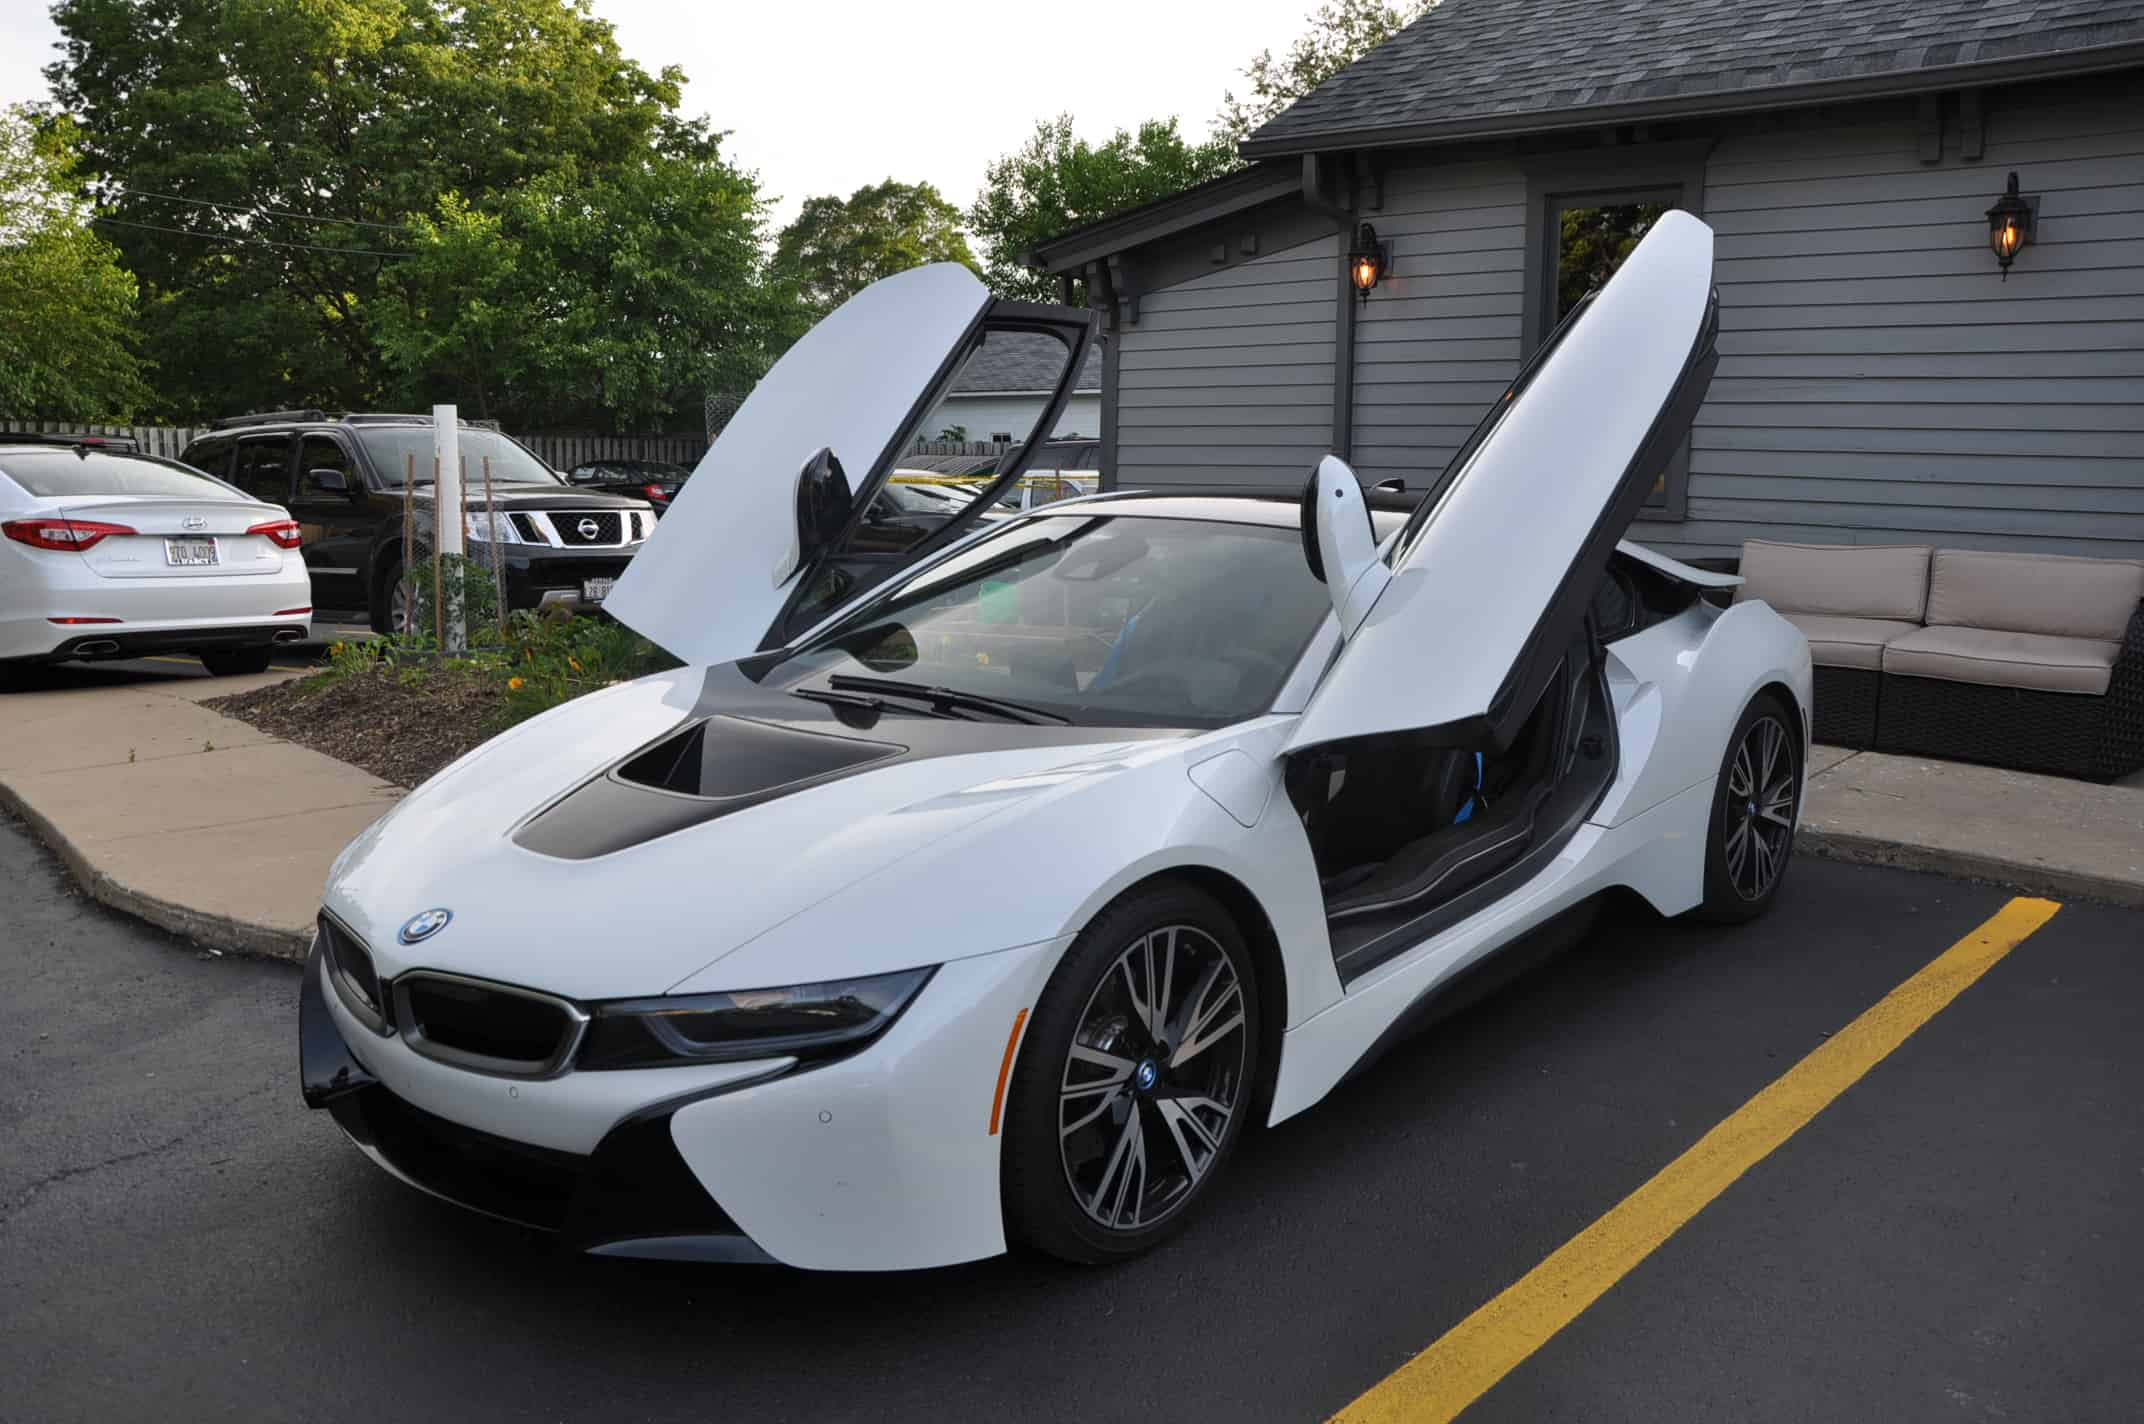 plainfield car show import night bmw i8 open doors white black car